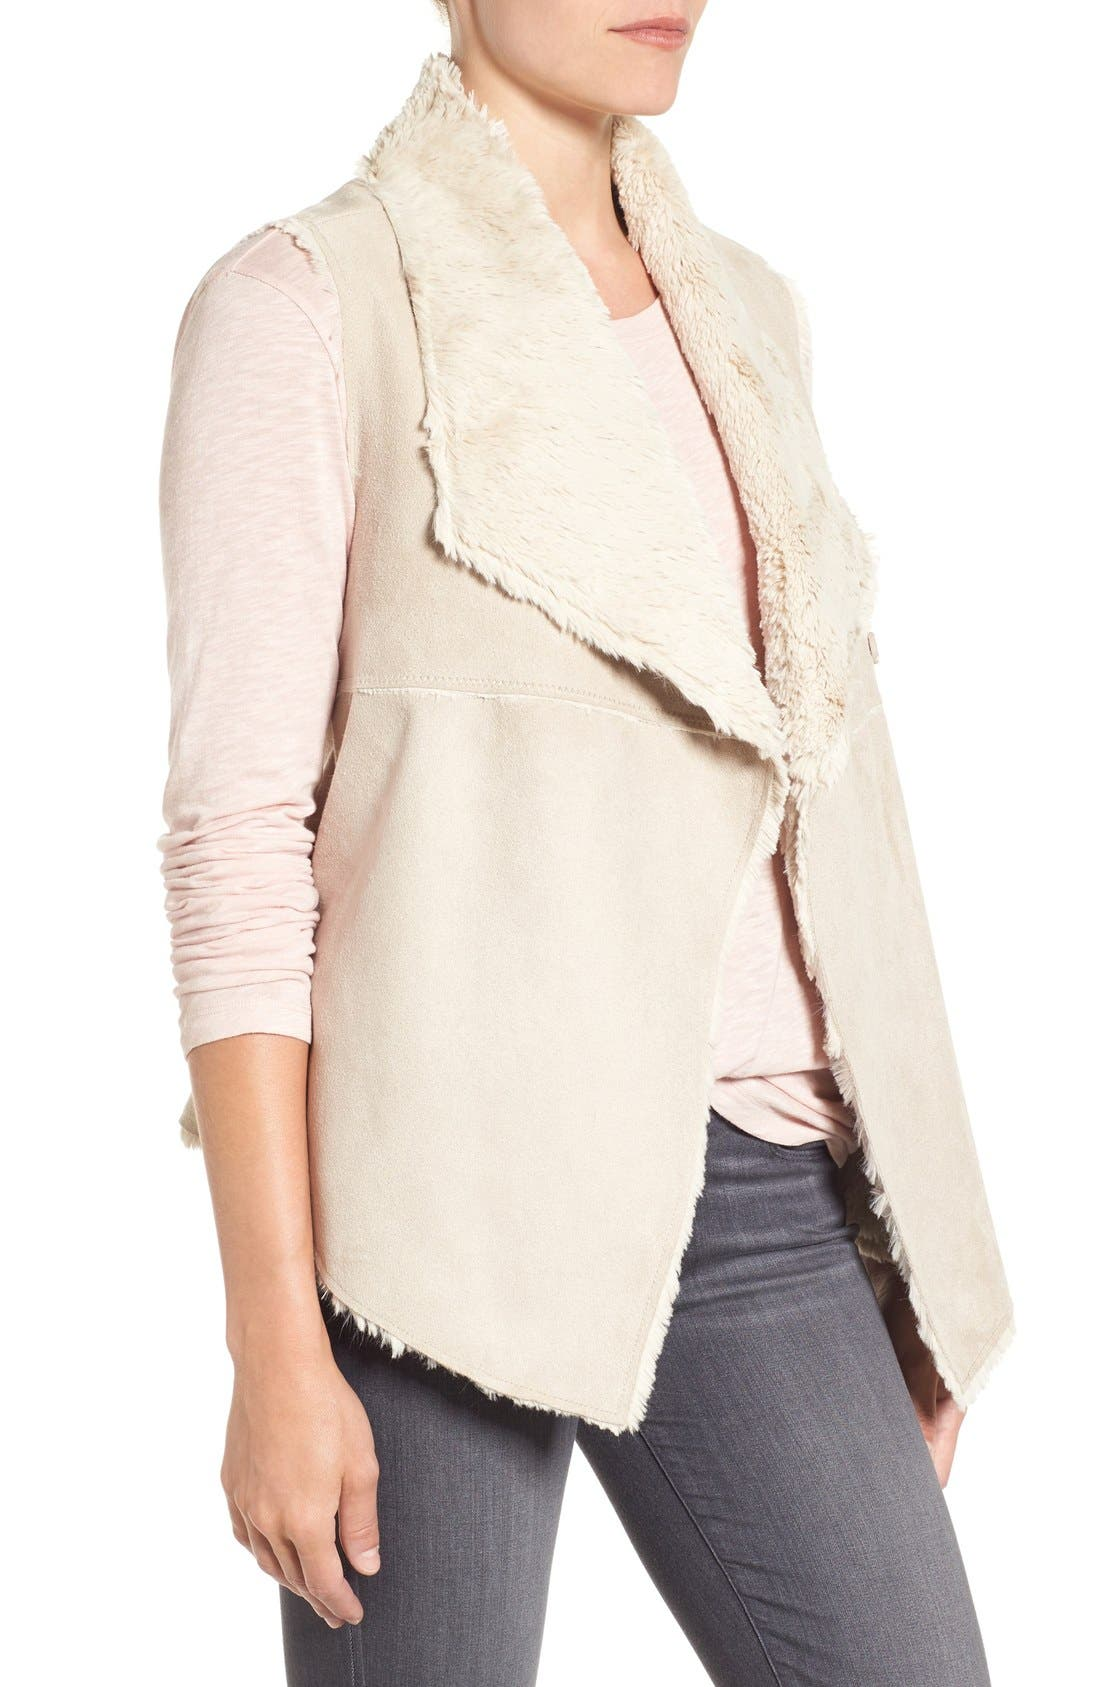 DYLAN,                             'Madison' Faux Shearling Vest,                             Alternate thumbnail 4, color,                             256